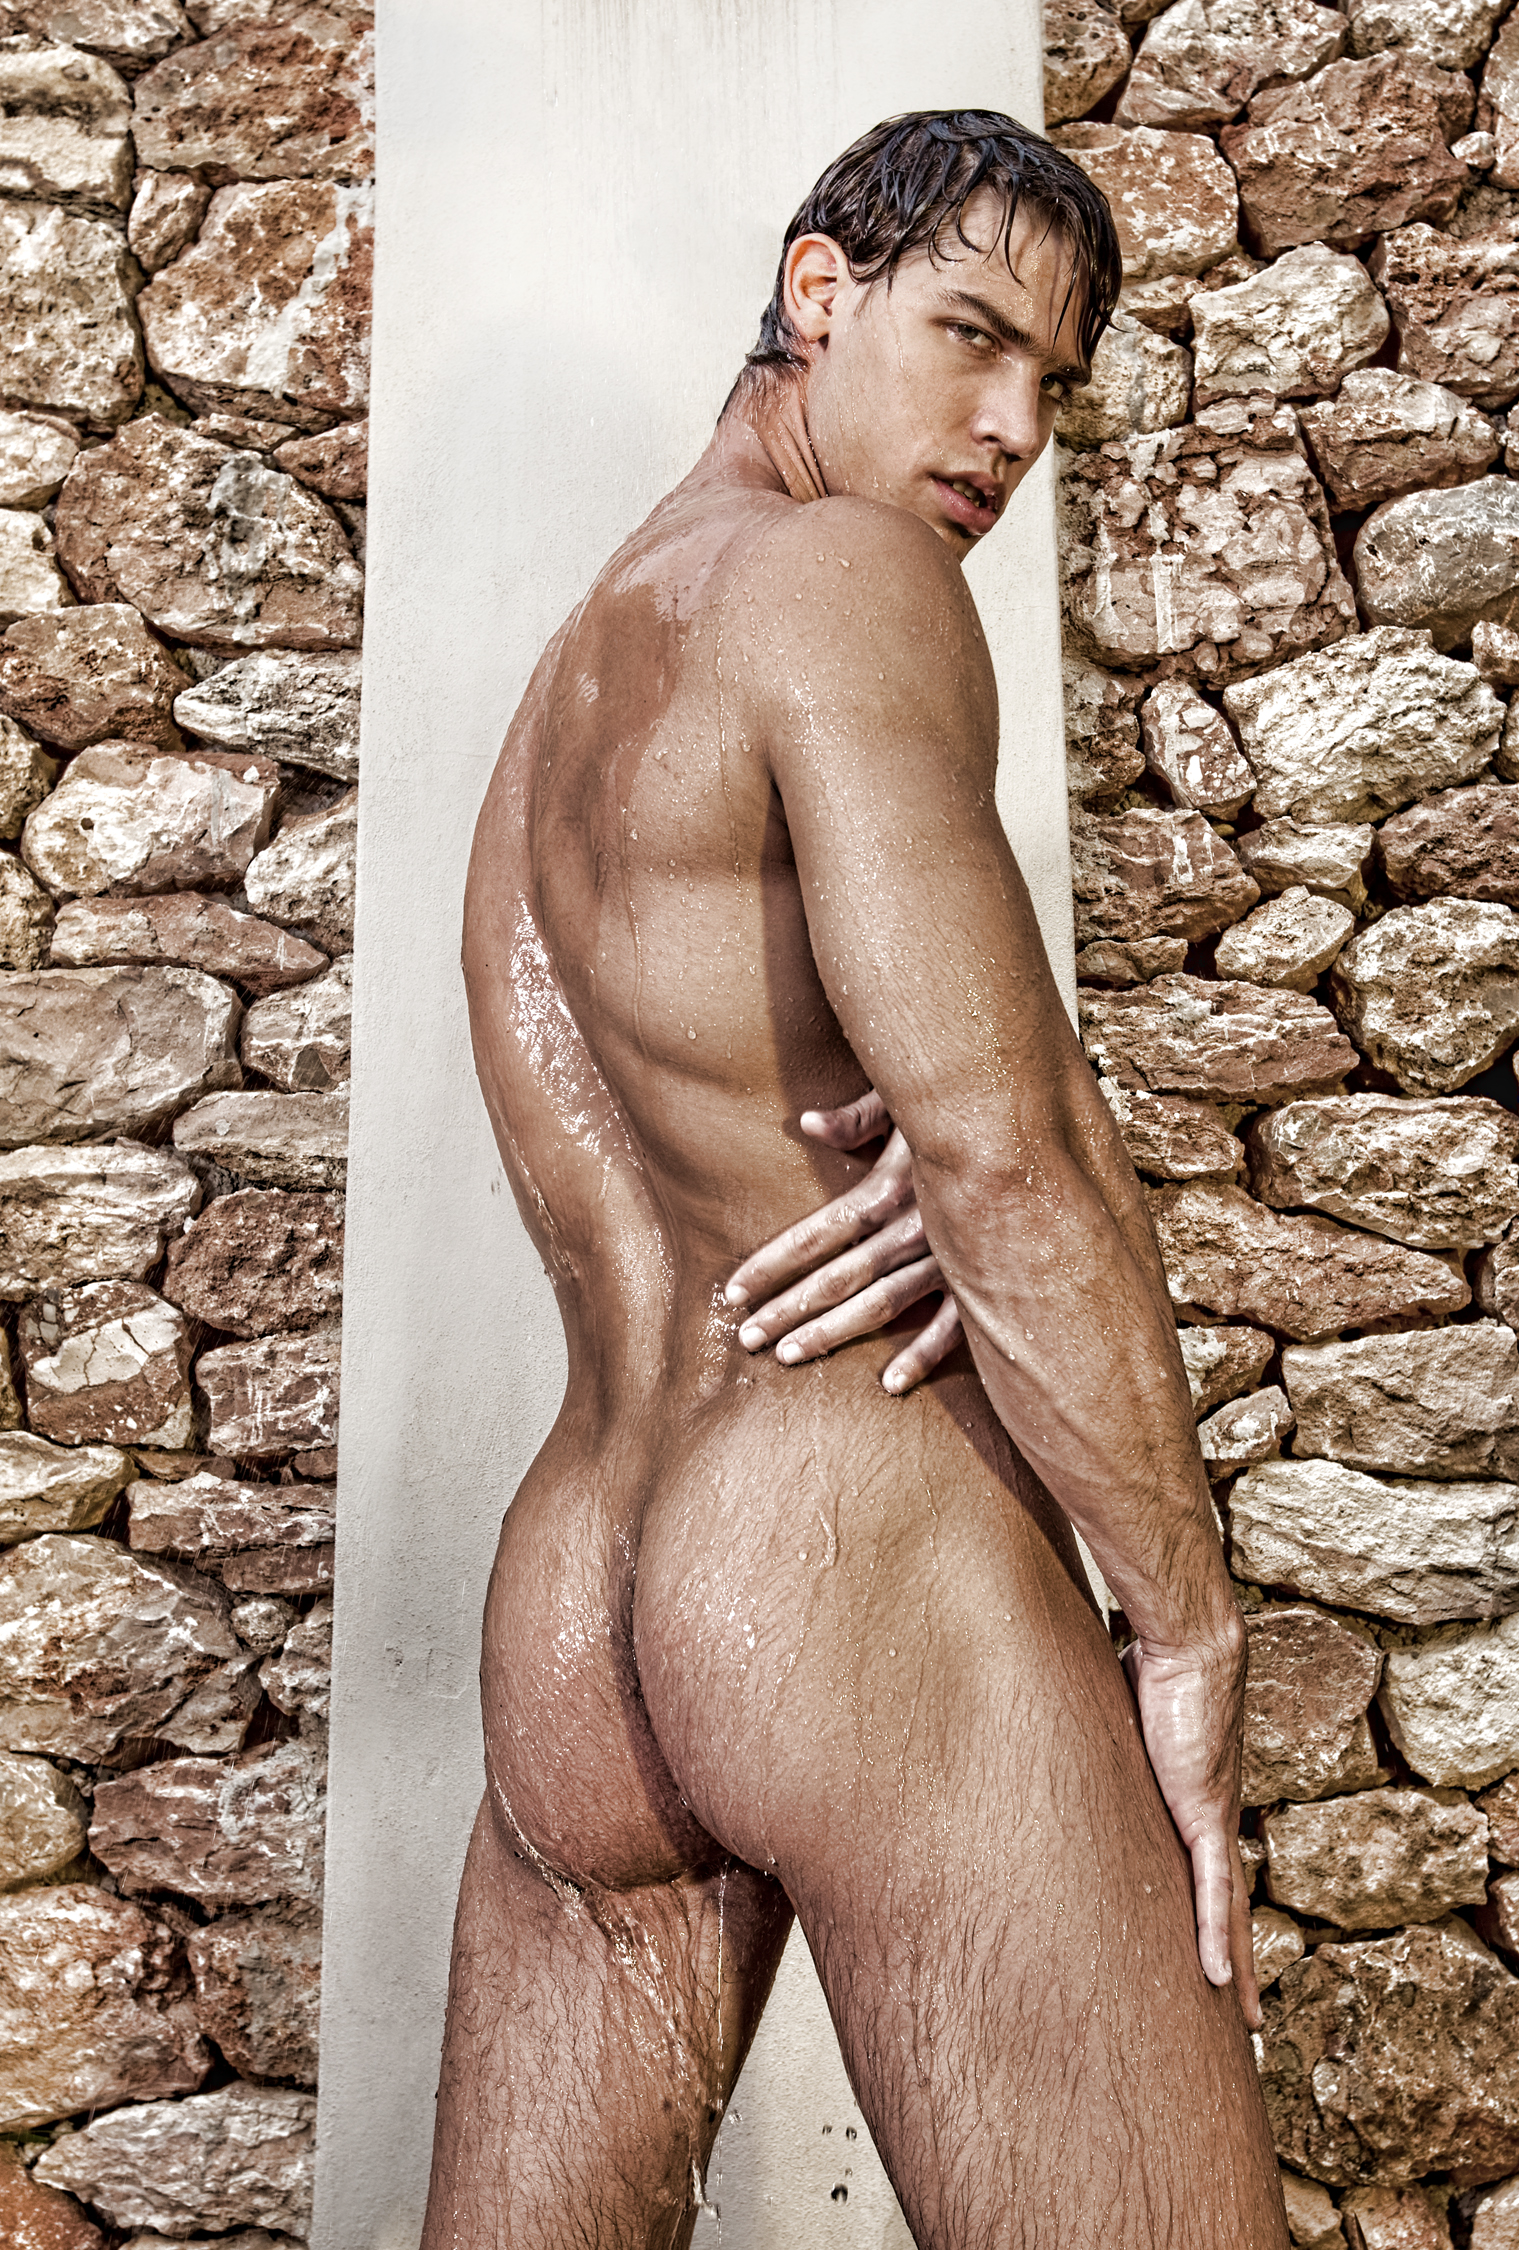 Porn Crush Of The Day Kris Evans By Joan Crisol